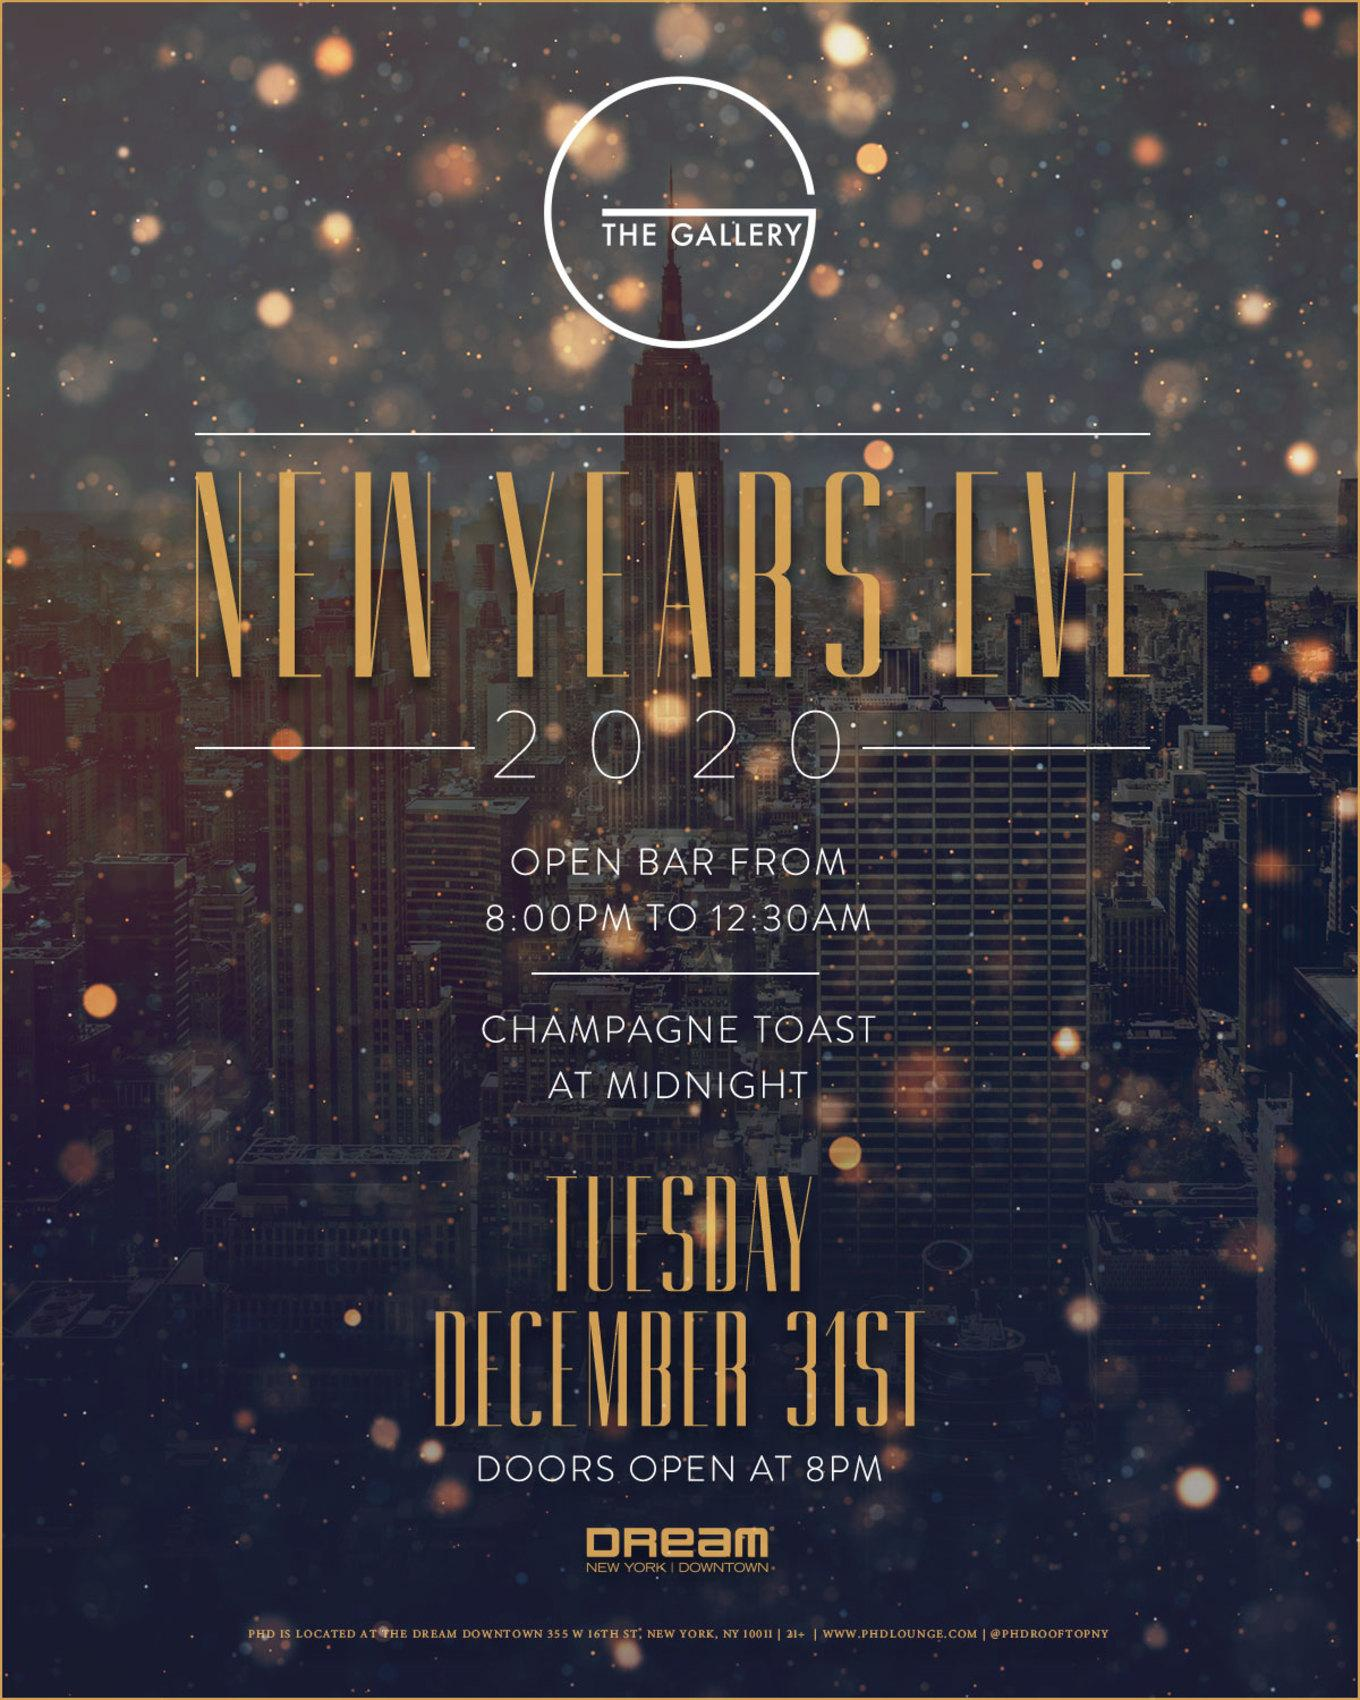 Dream Downtown New Year's Eve 2020 at The Gallery